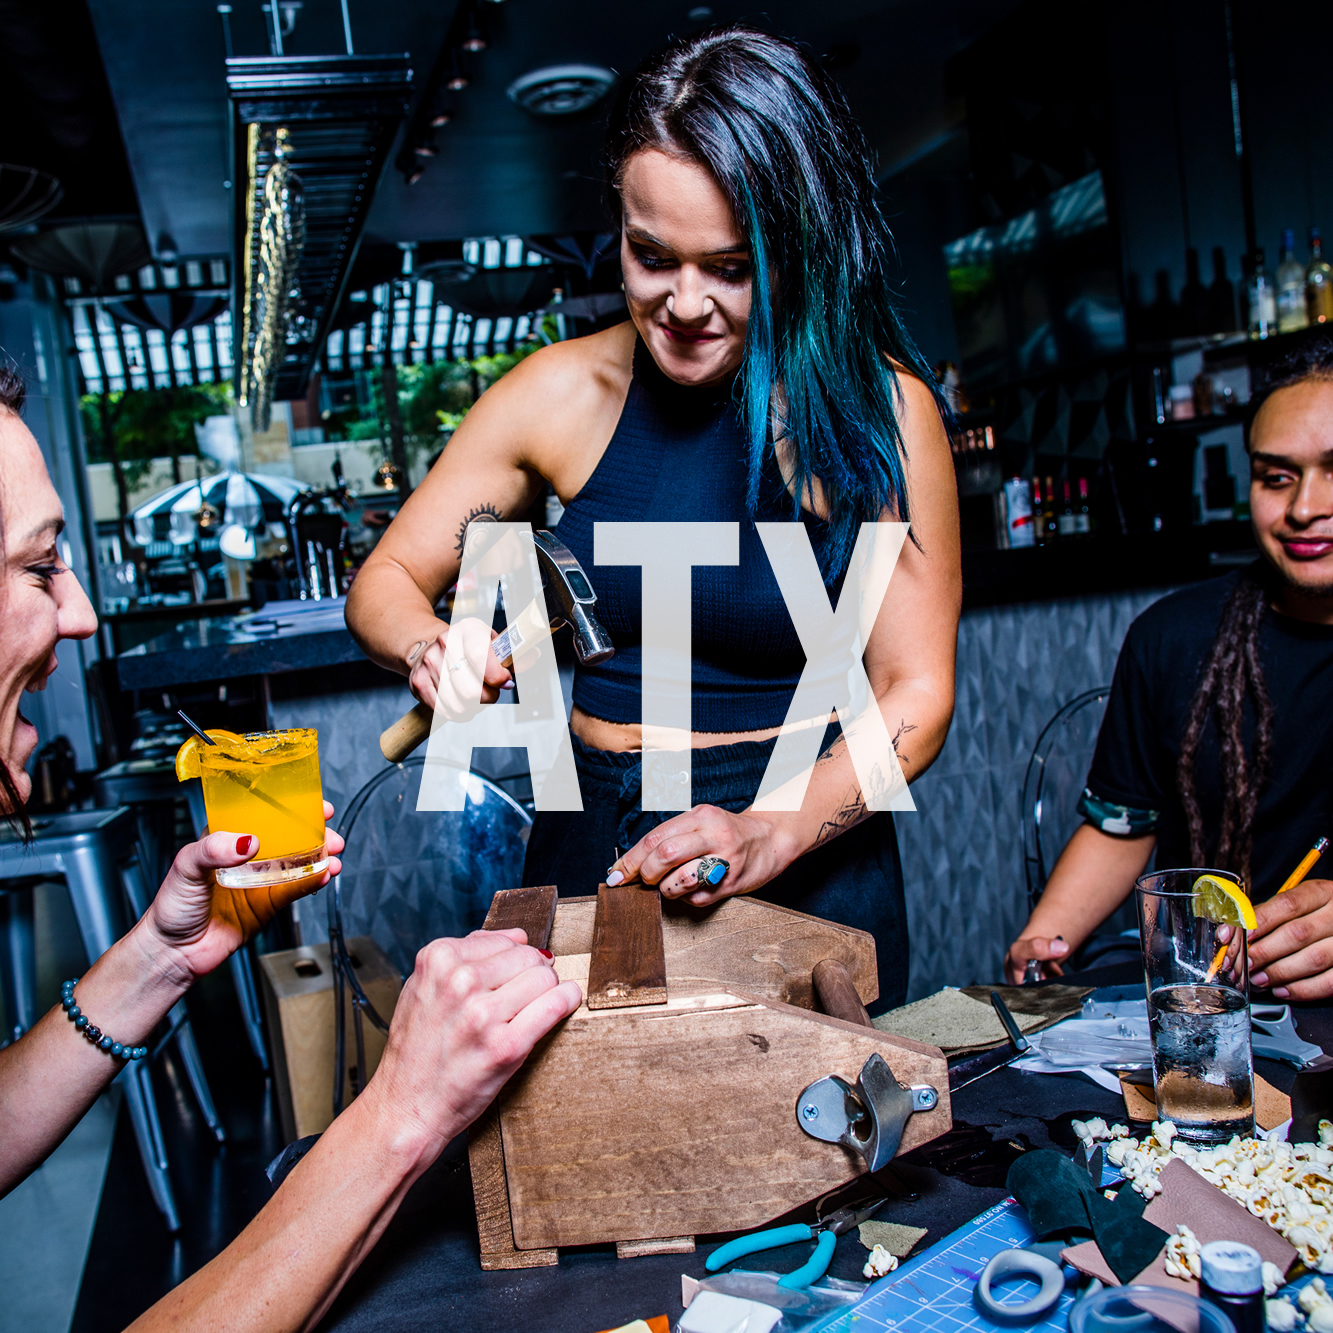 Make DIY Craft Projects and Enjoy Cocktails at Upstairs Circus Austin - Where DIY Workshop meets Bar